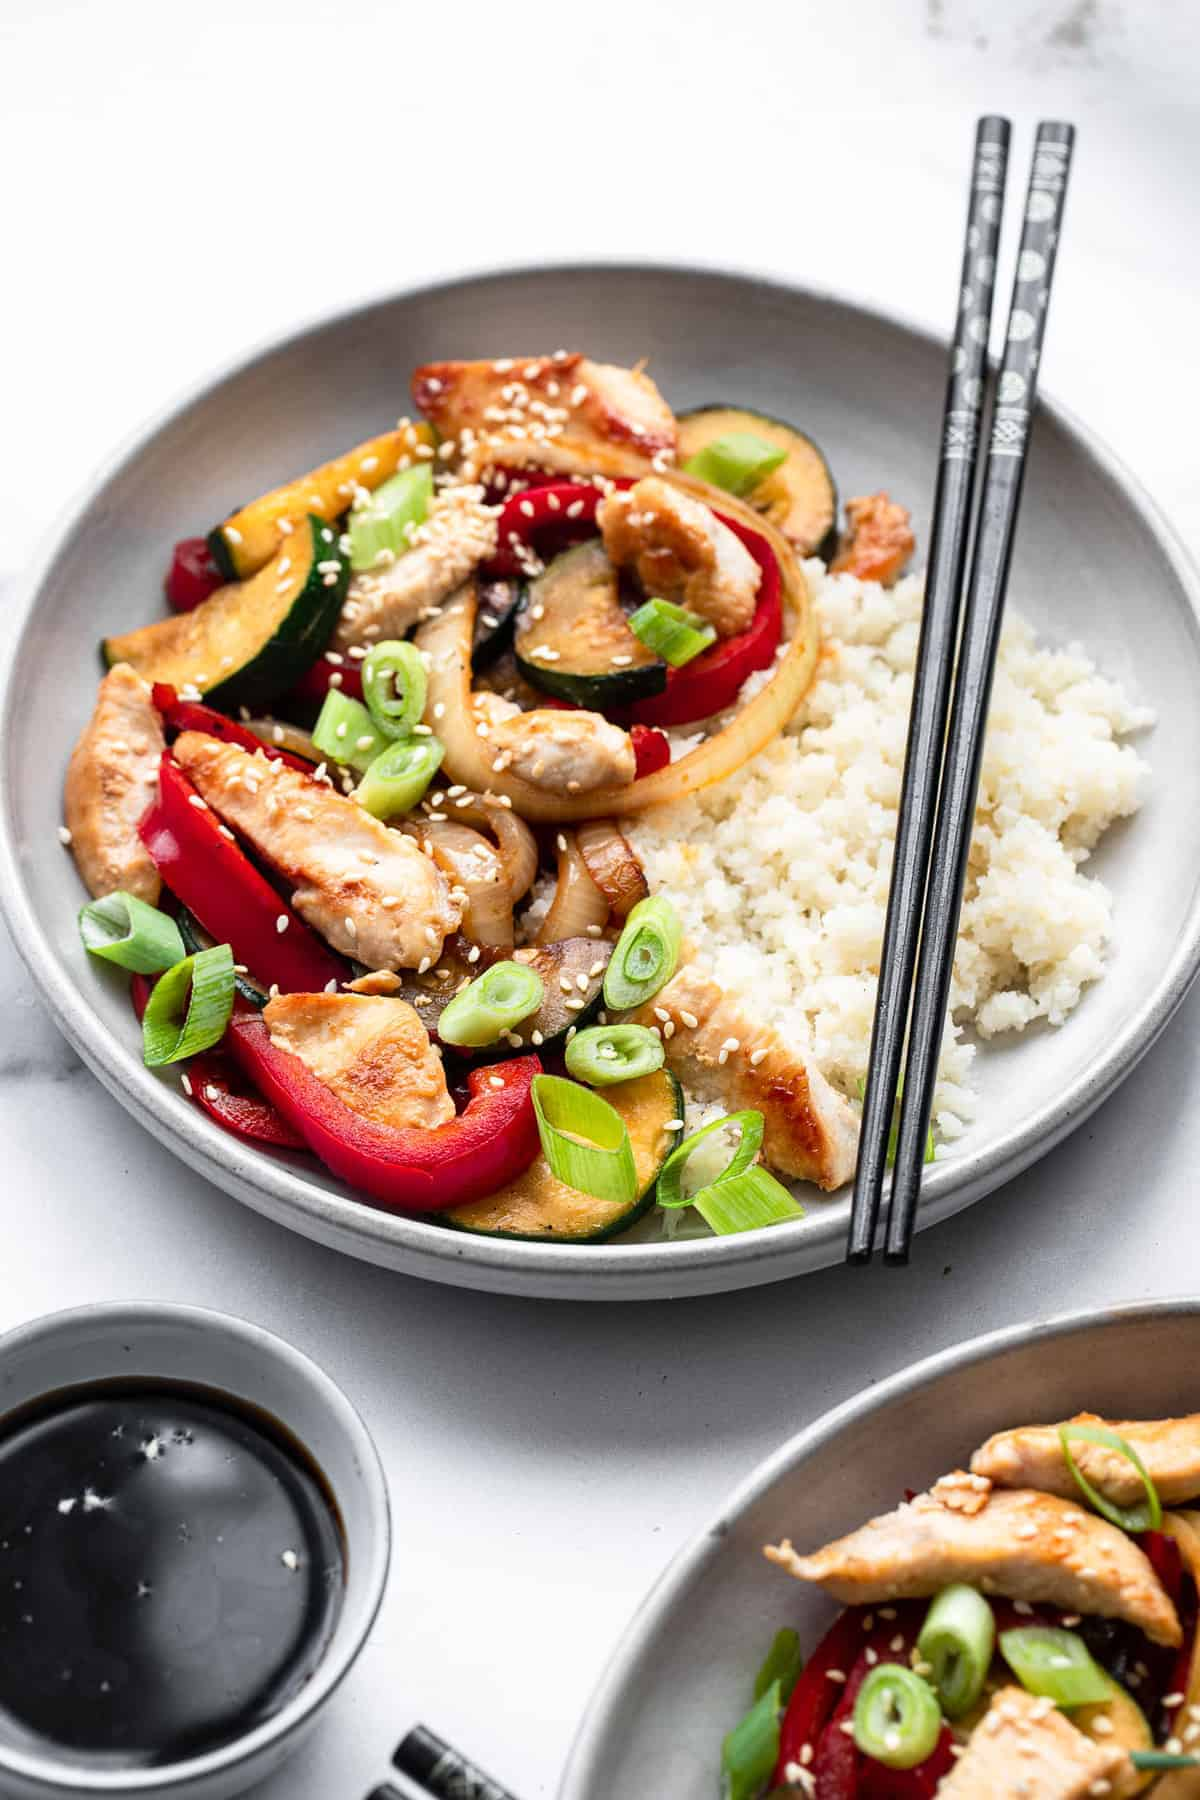 low carb keto chicken stir fry in a gray ceramic plate